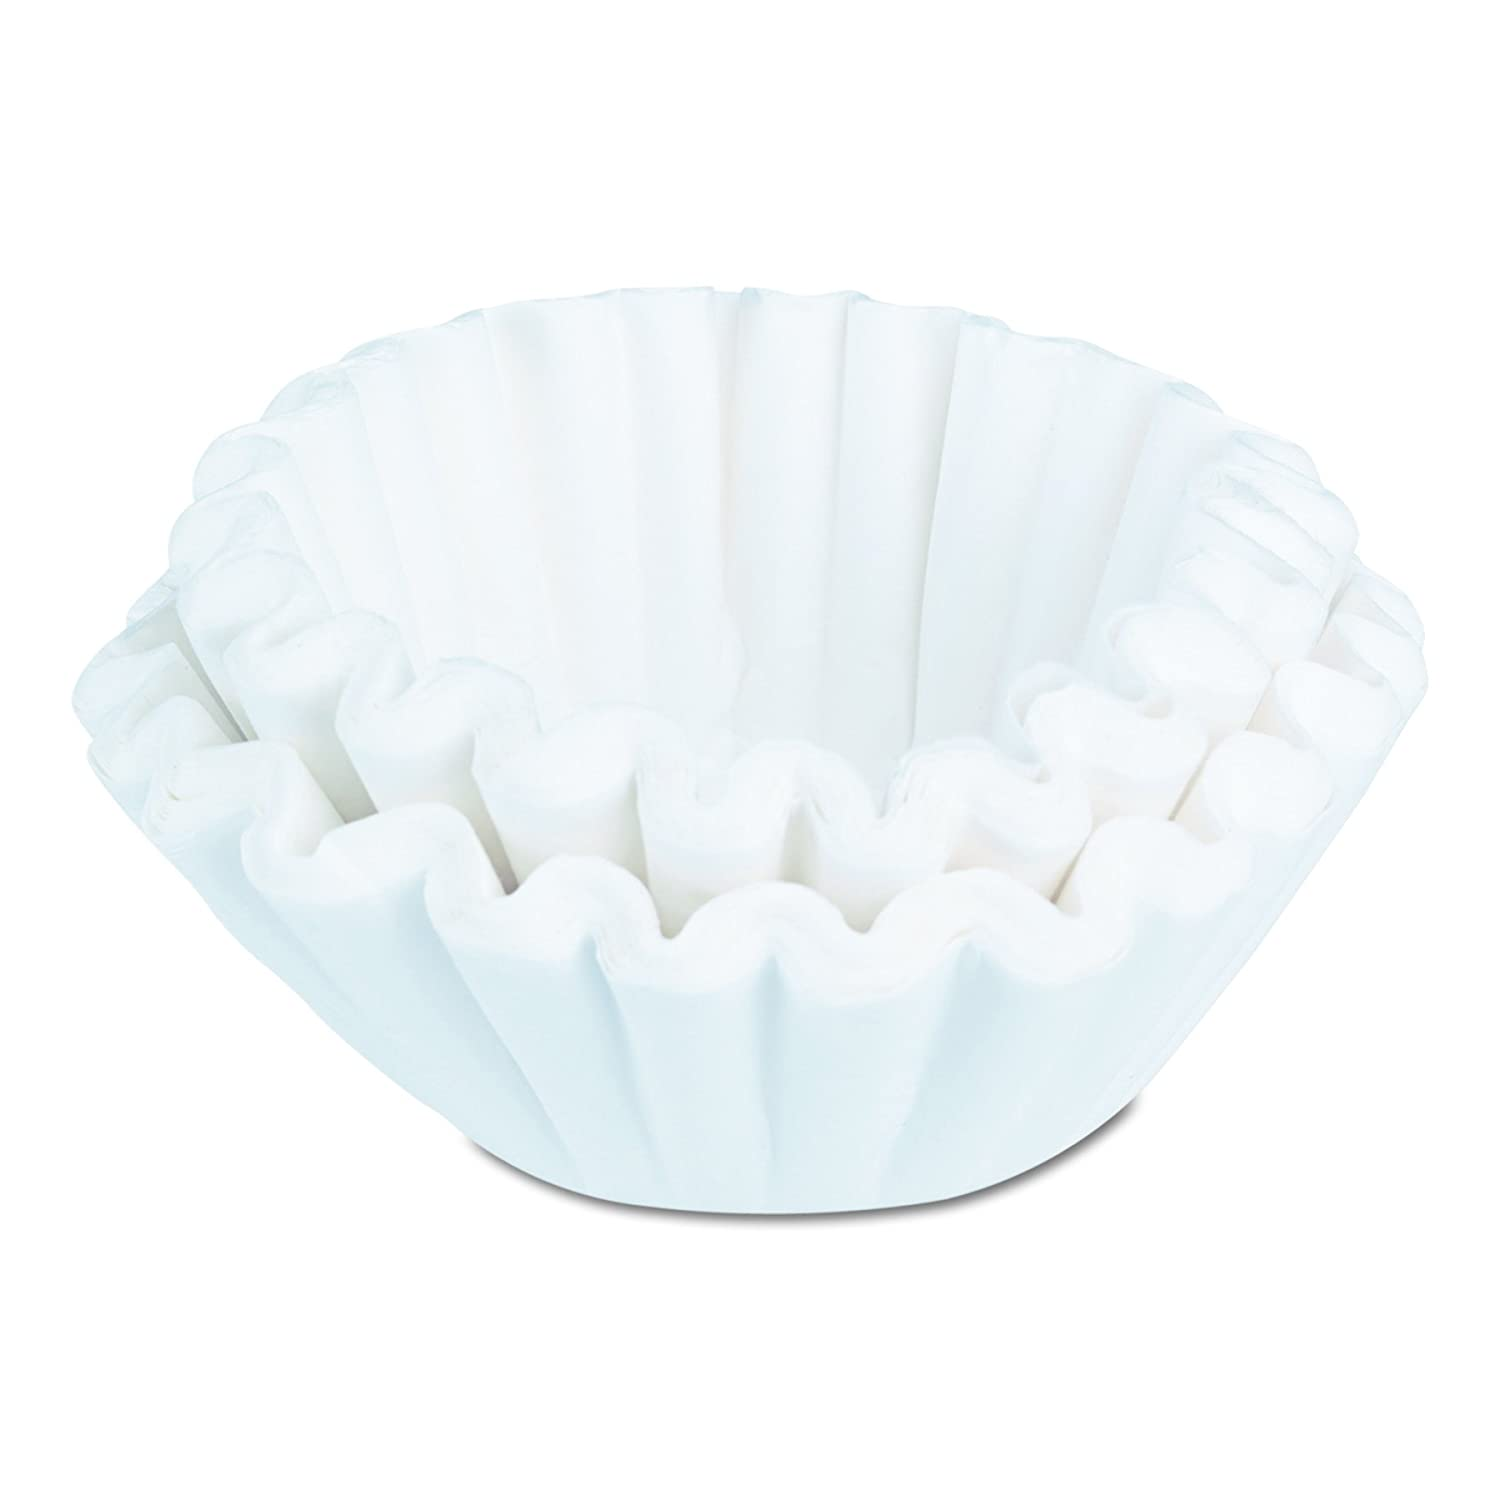 BUNN 6GAL21X9 Commercial Long-awaited Coffee Filters Cas Urn Many popular brands Gallon 6 Style